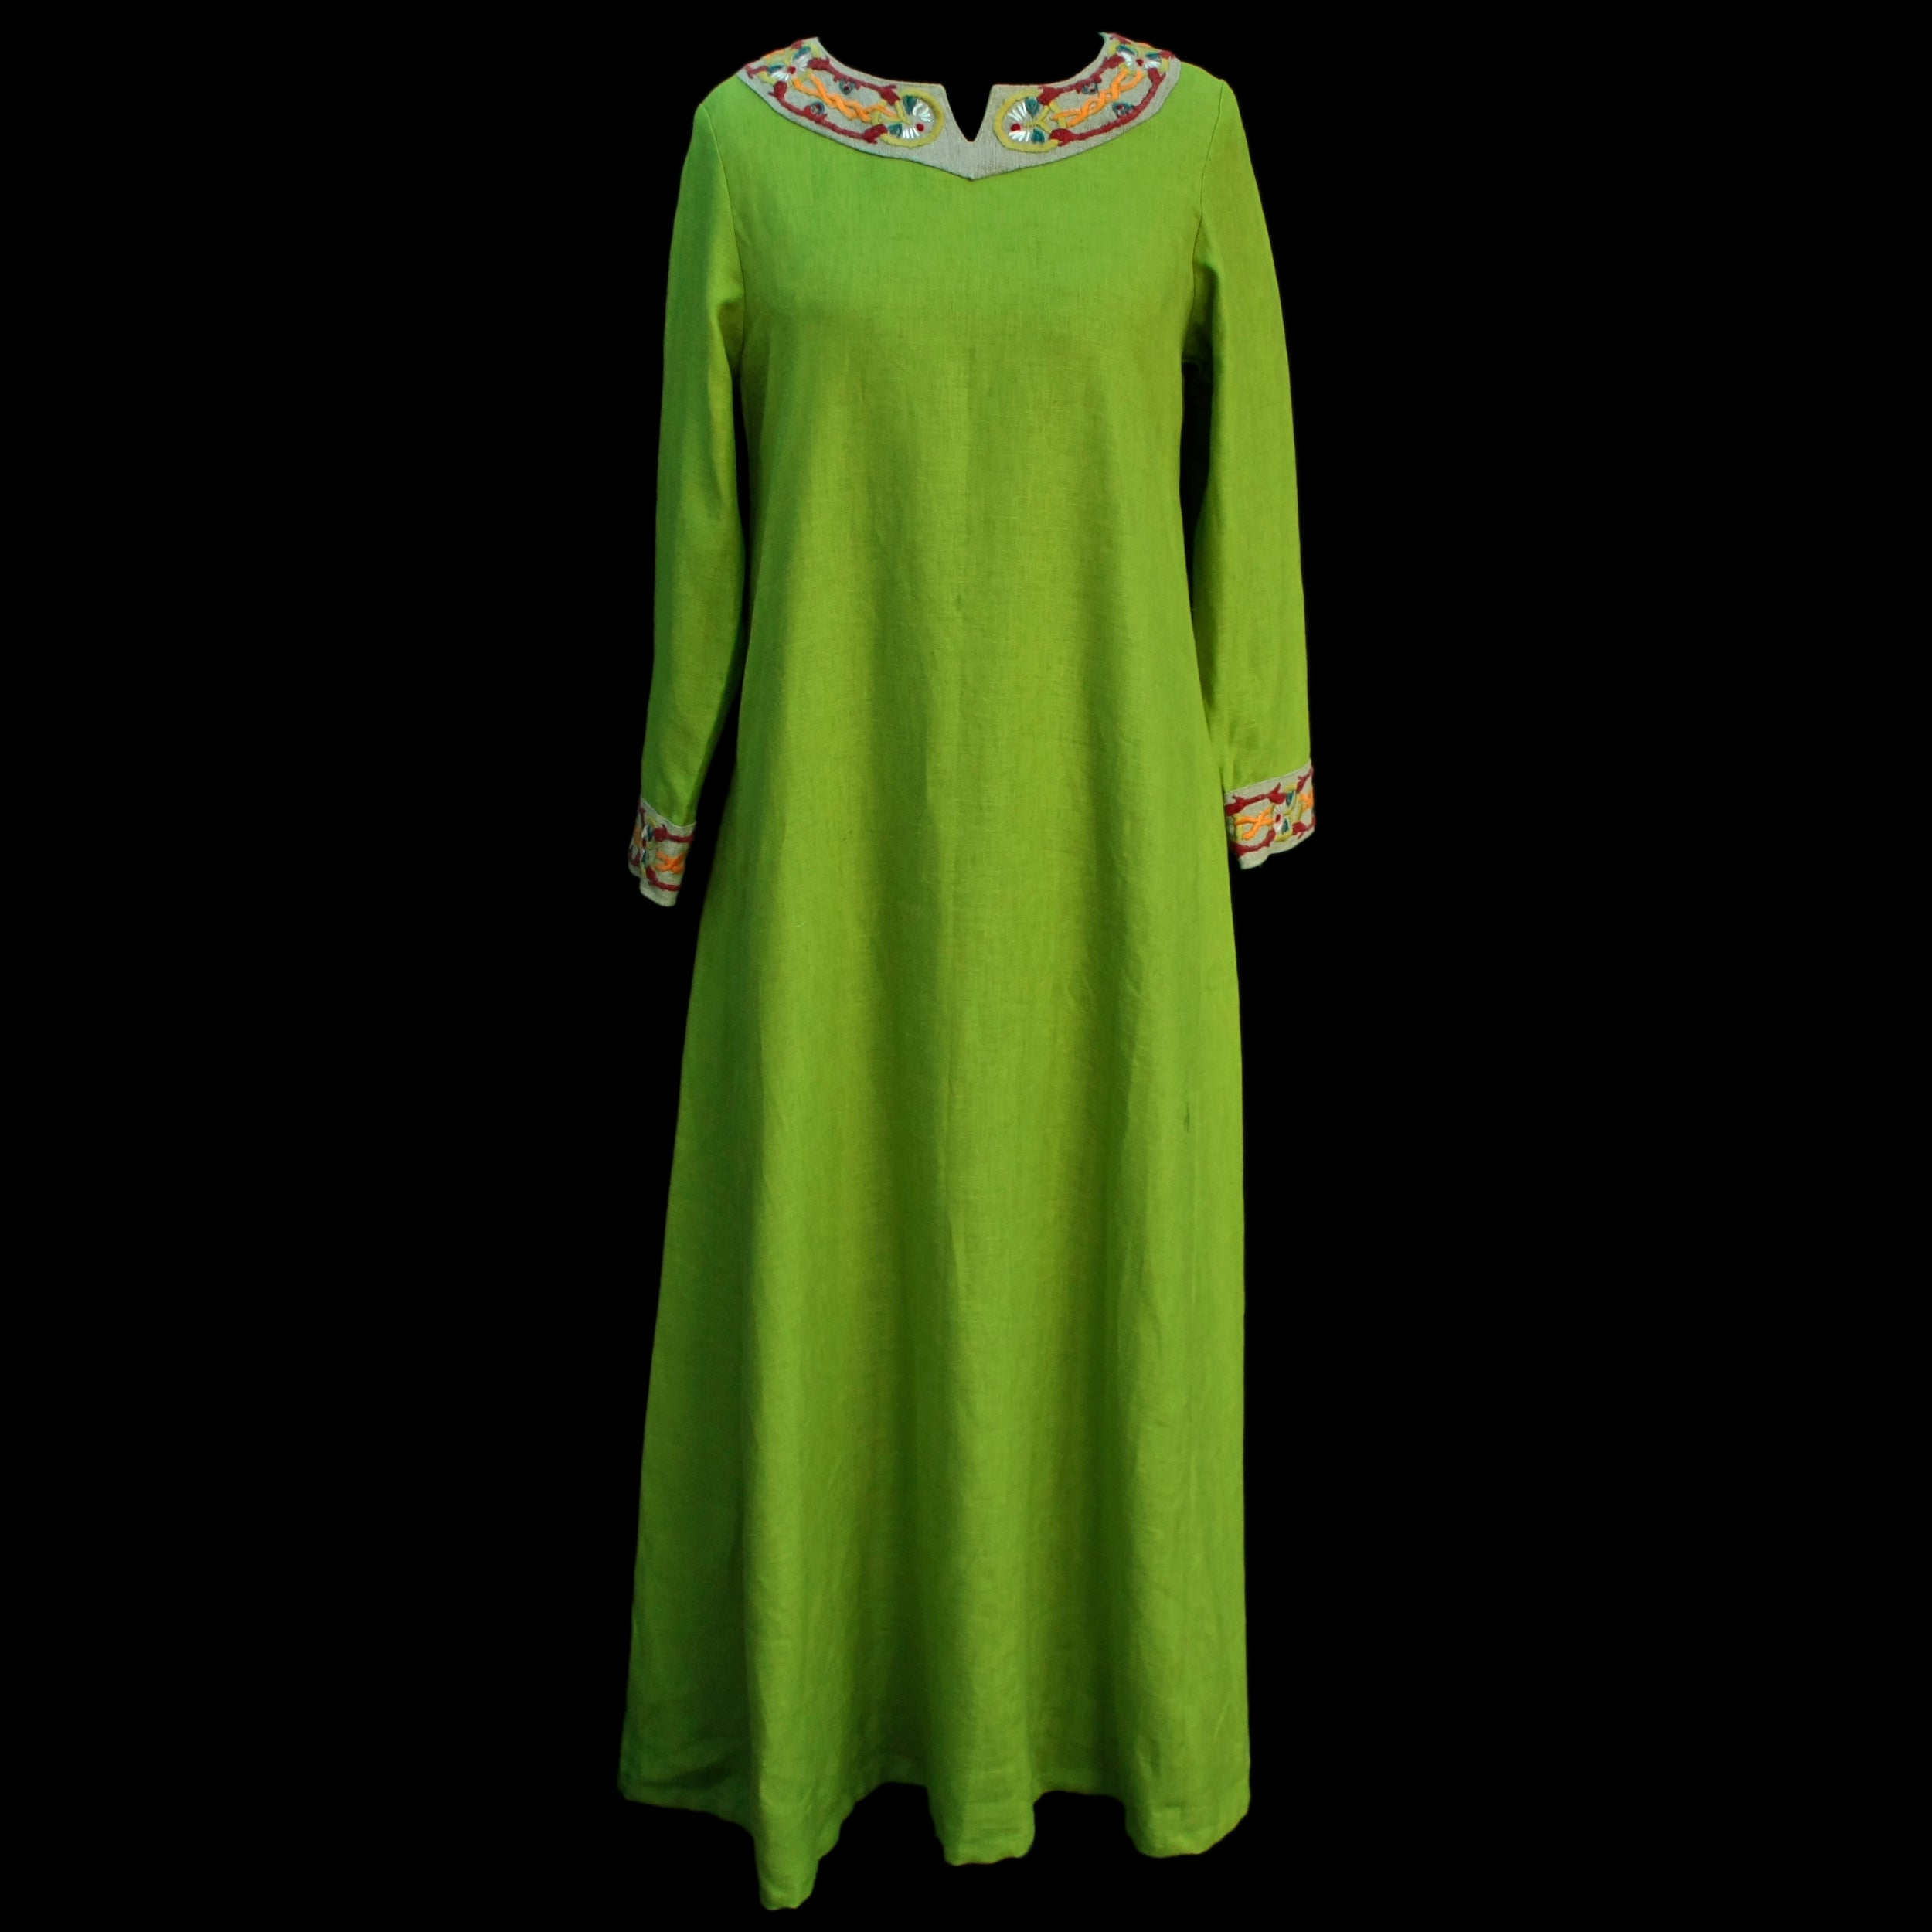 Green Linen Viking Women's Dress with Wool Embroidery